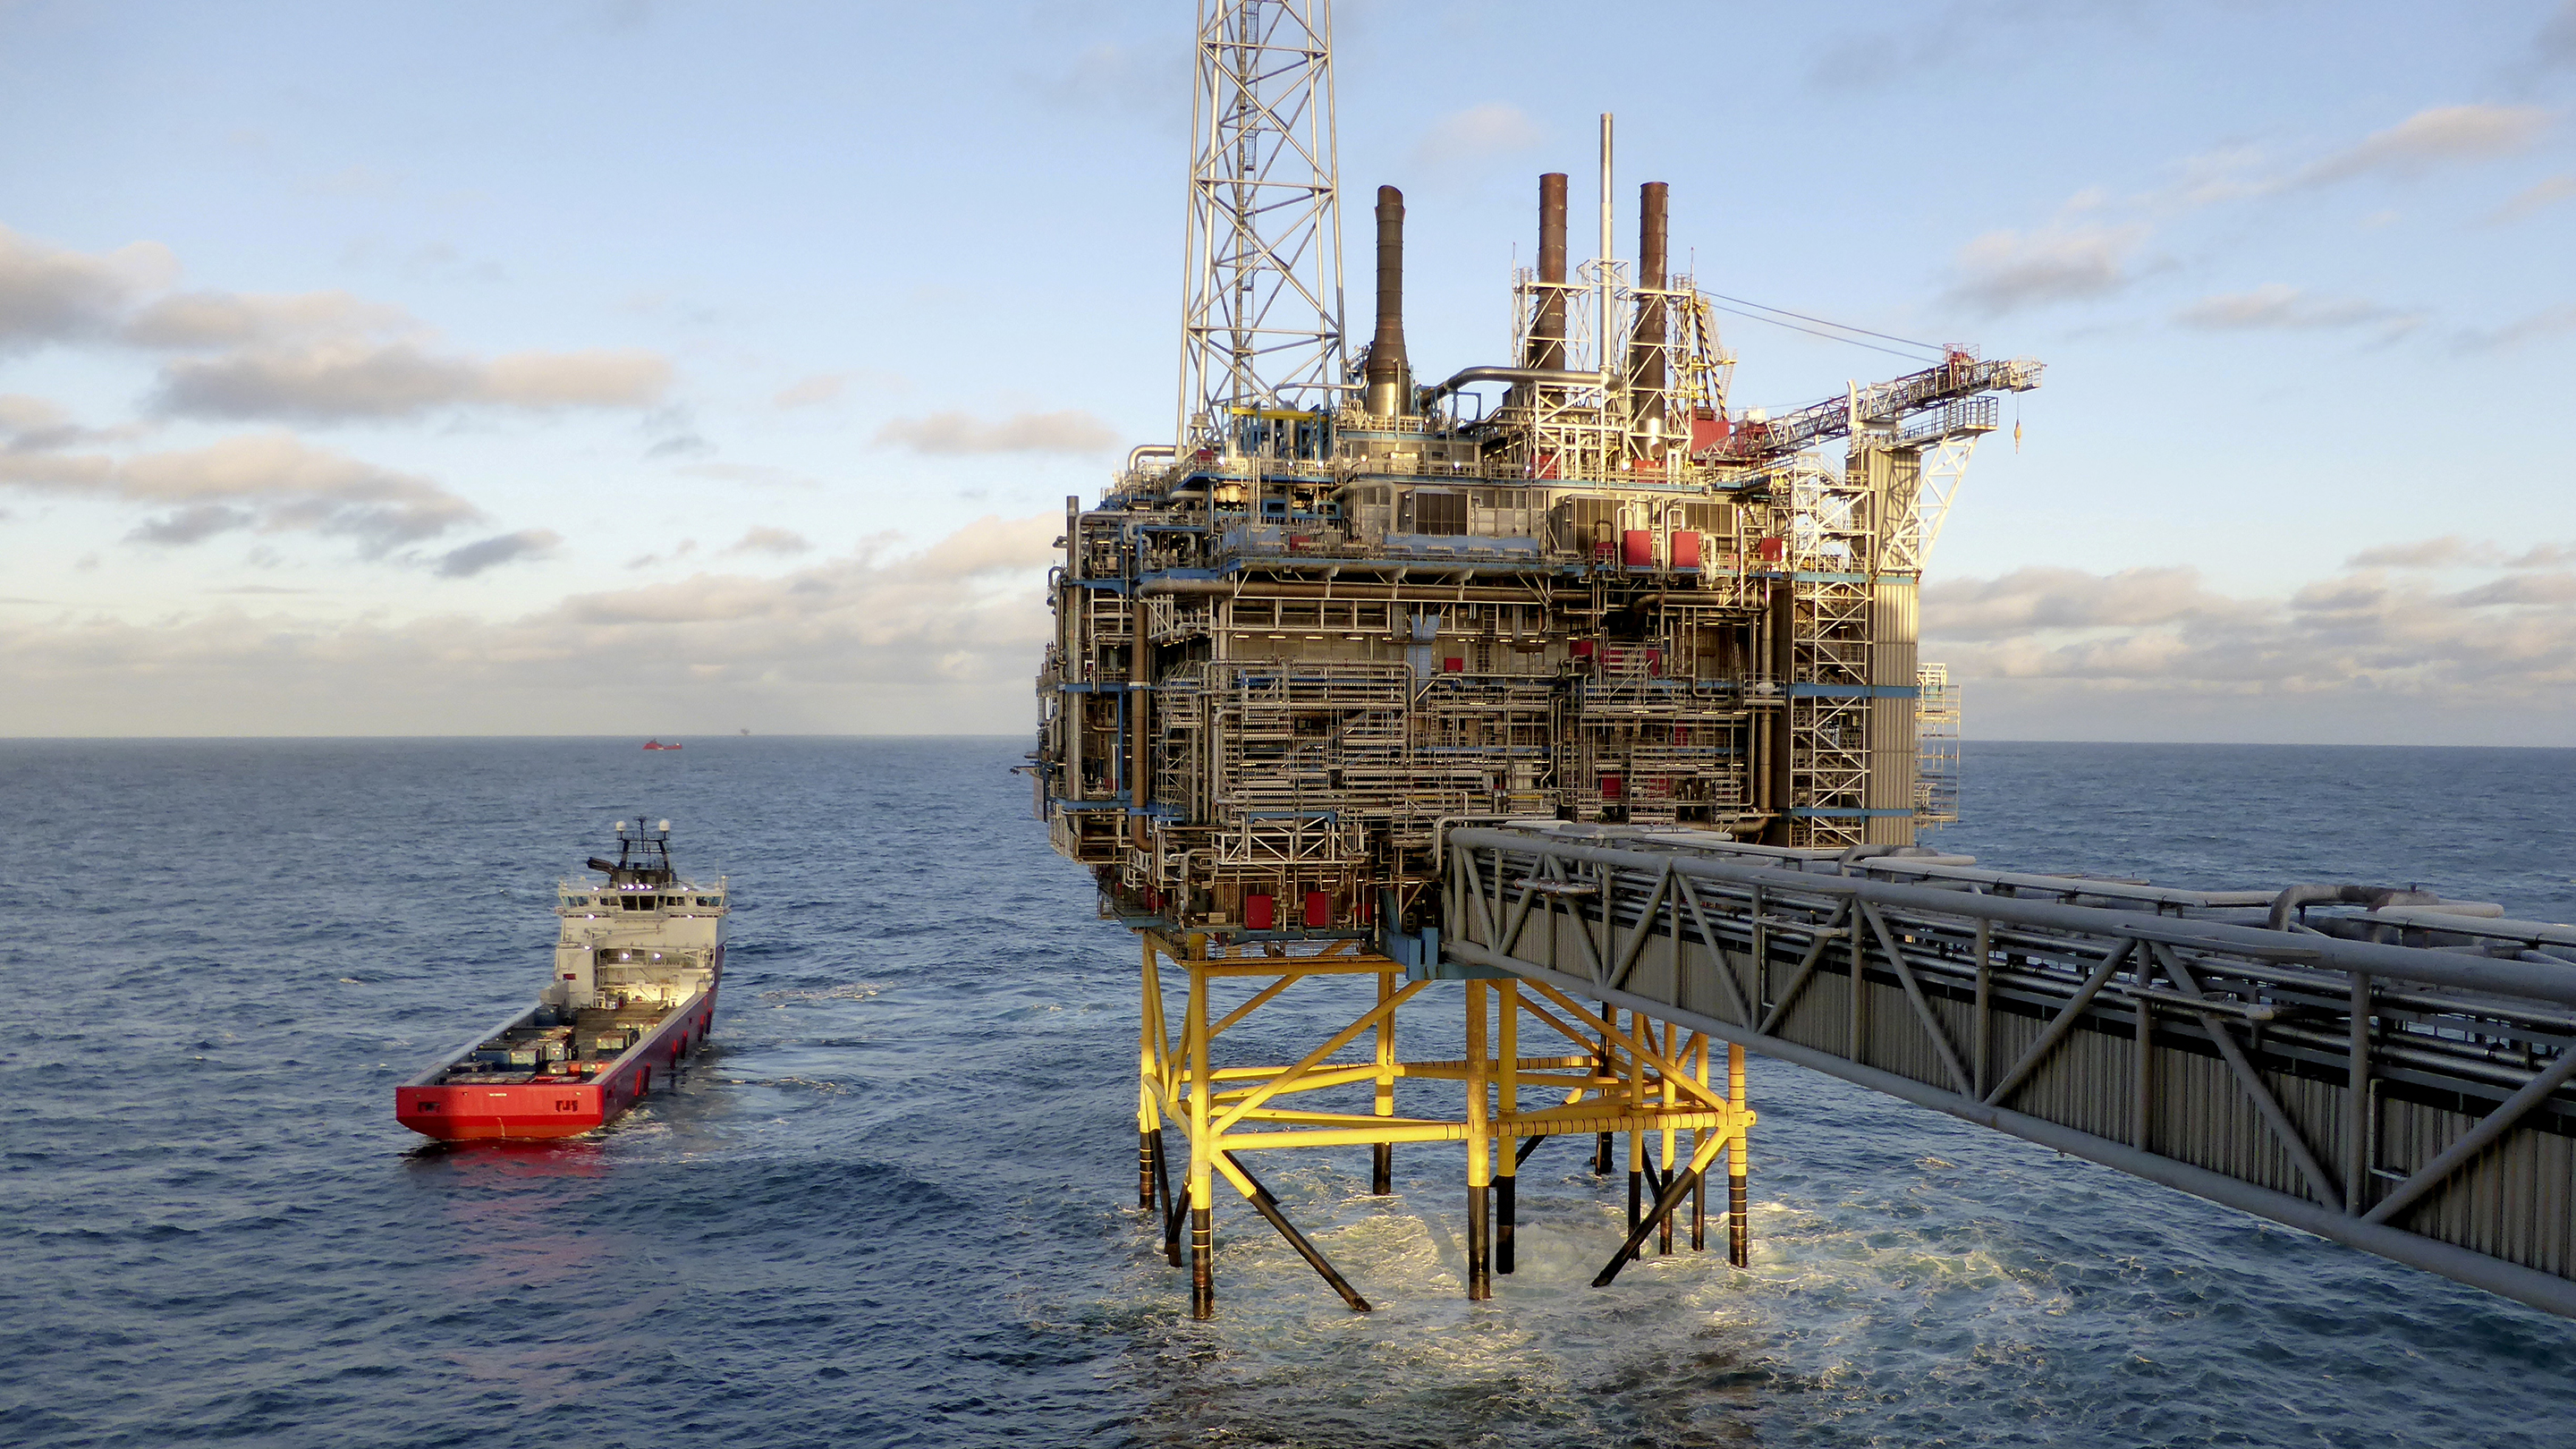 Oil and gas company Statoil gas processing and CO2 removal platform Sleipner T is pictured in the offshore near the Stavanger